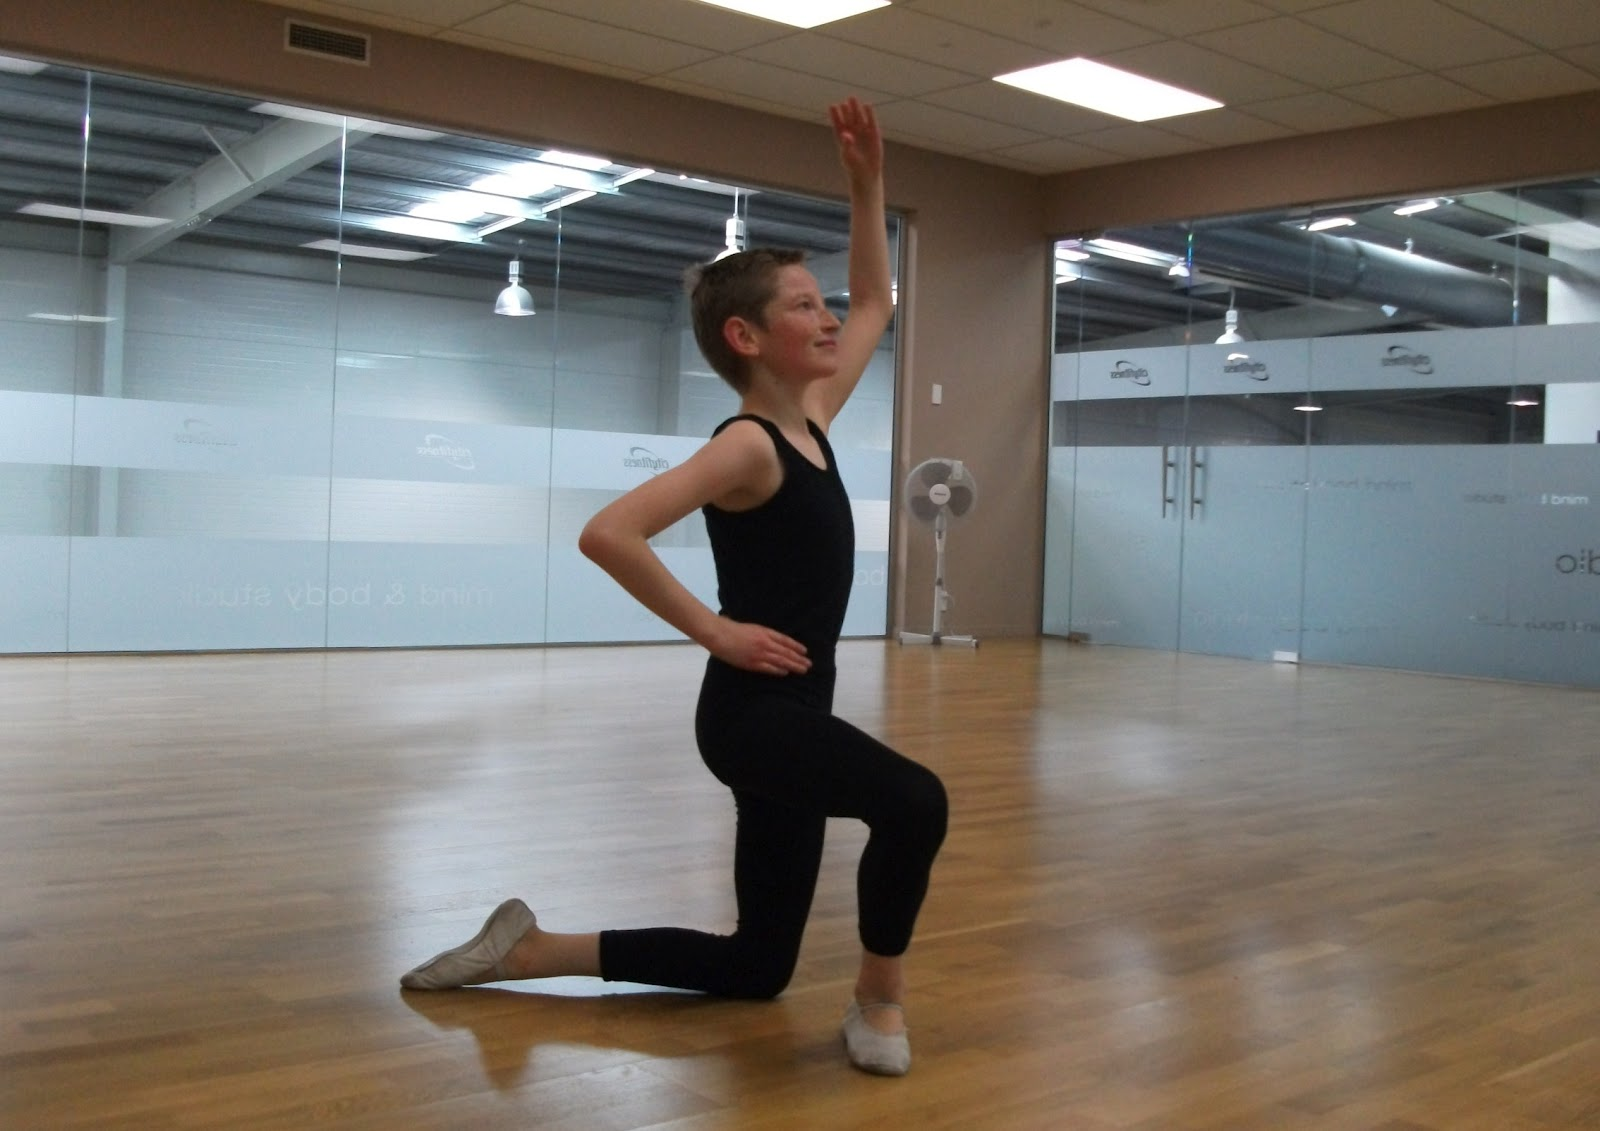 Ballet Boy New Zealand: Today at the gym and Kapiti Comps